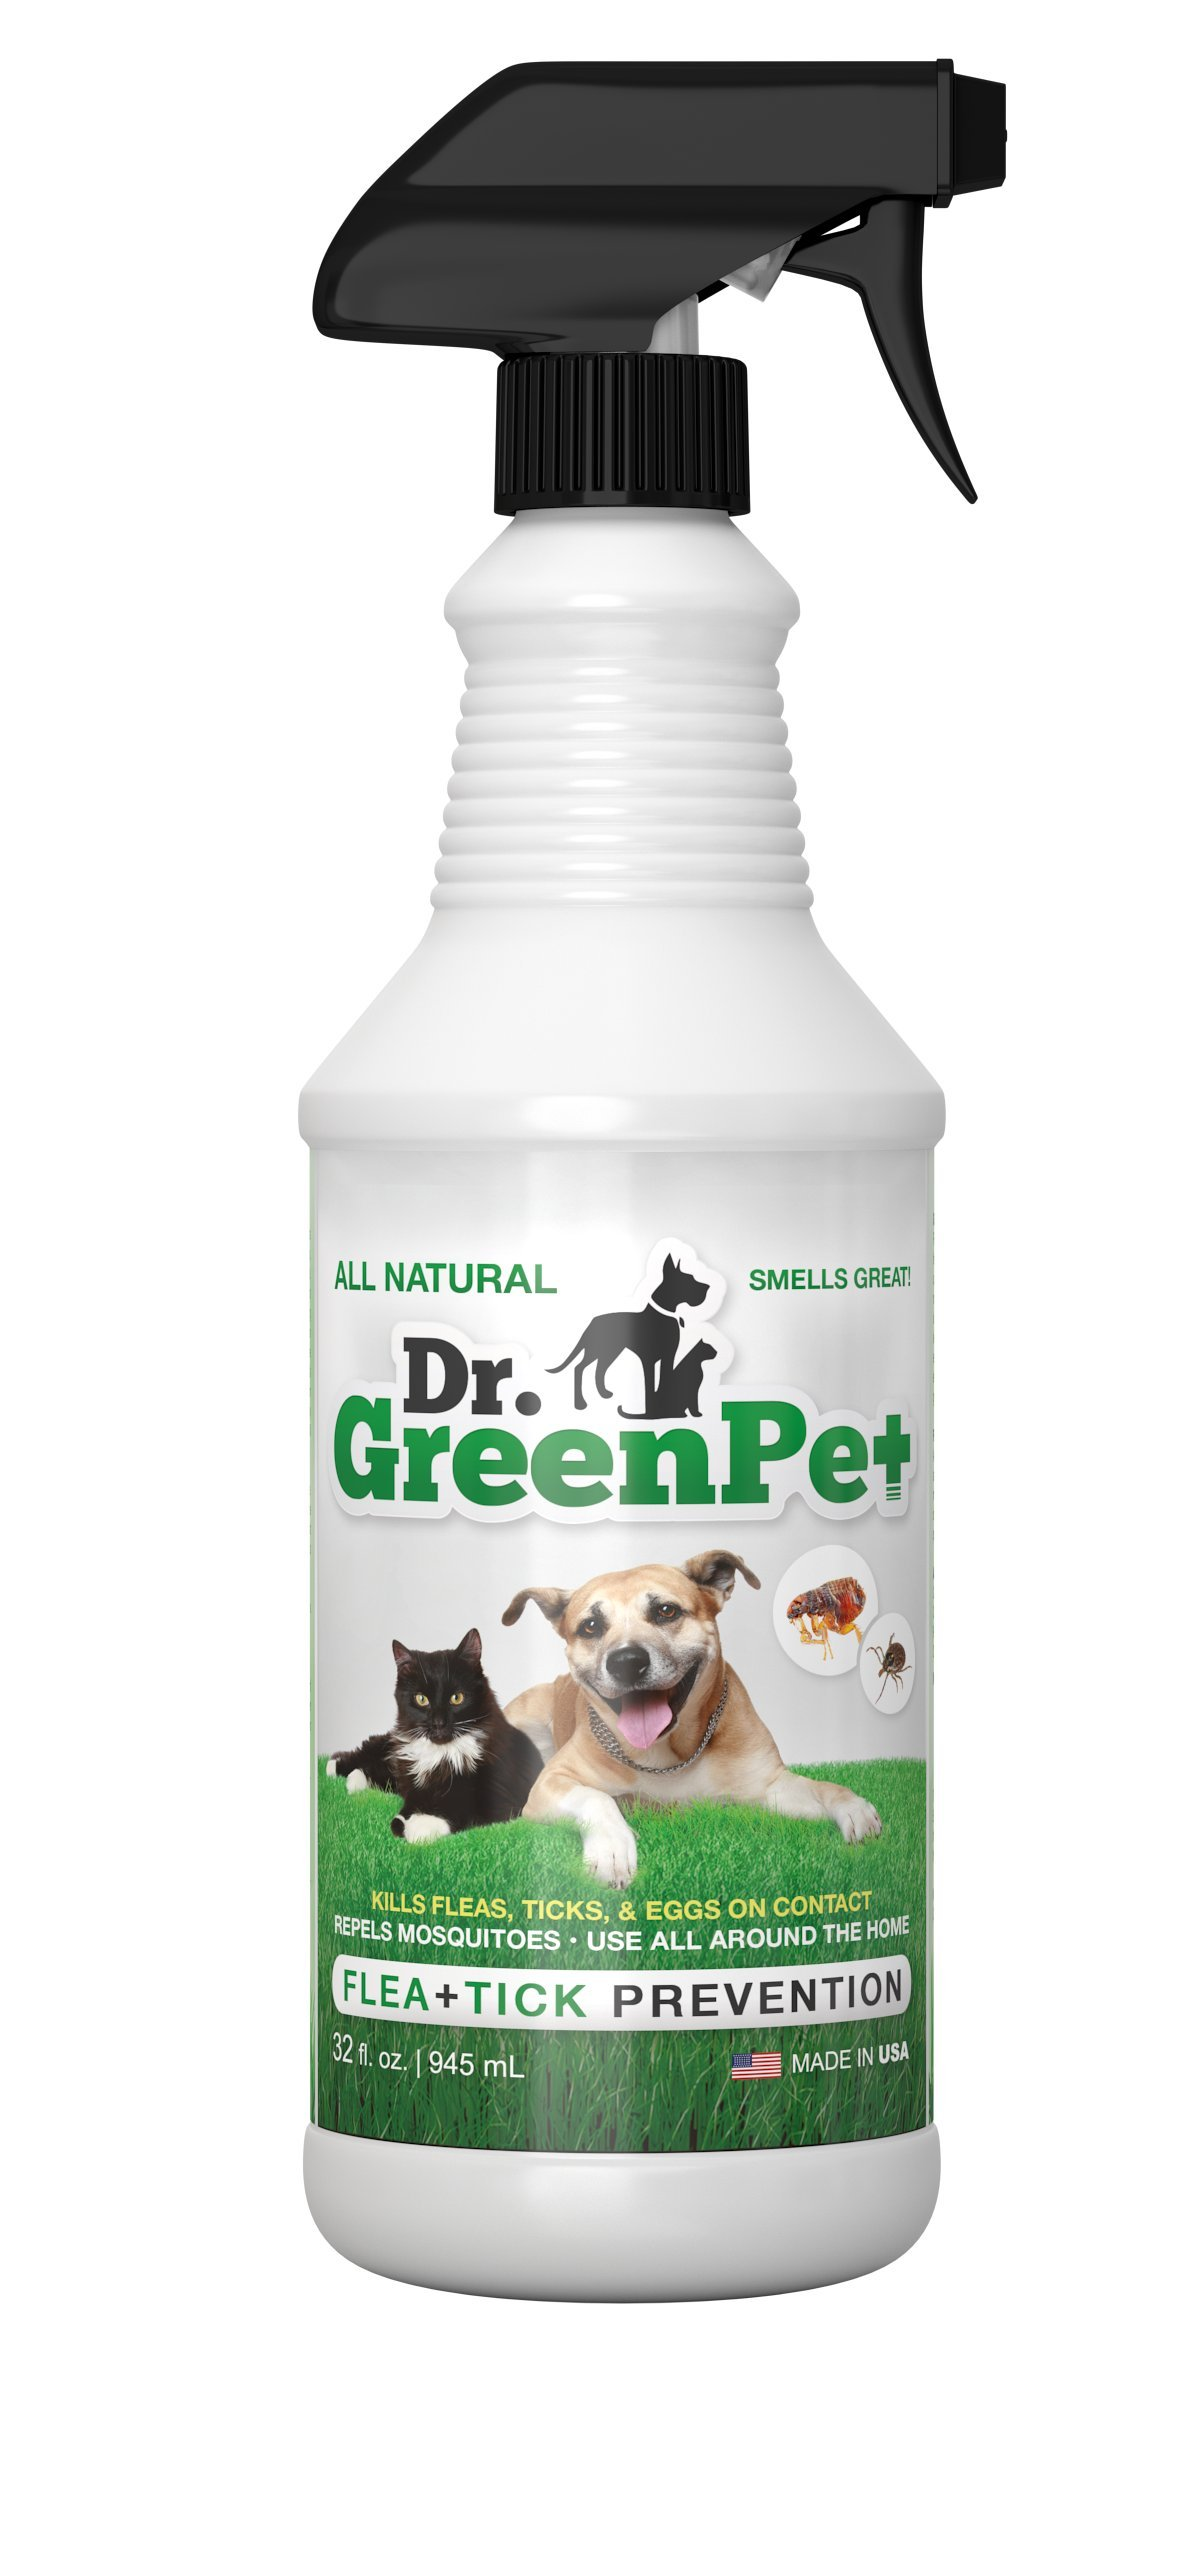 Dr. GreenPet All Natural Flea Control, Flea & Tick Prevention for Dogs & Cats - 32oz Spray